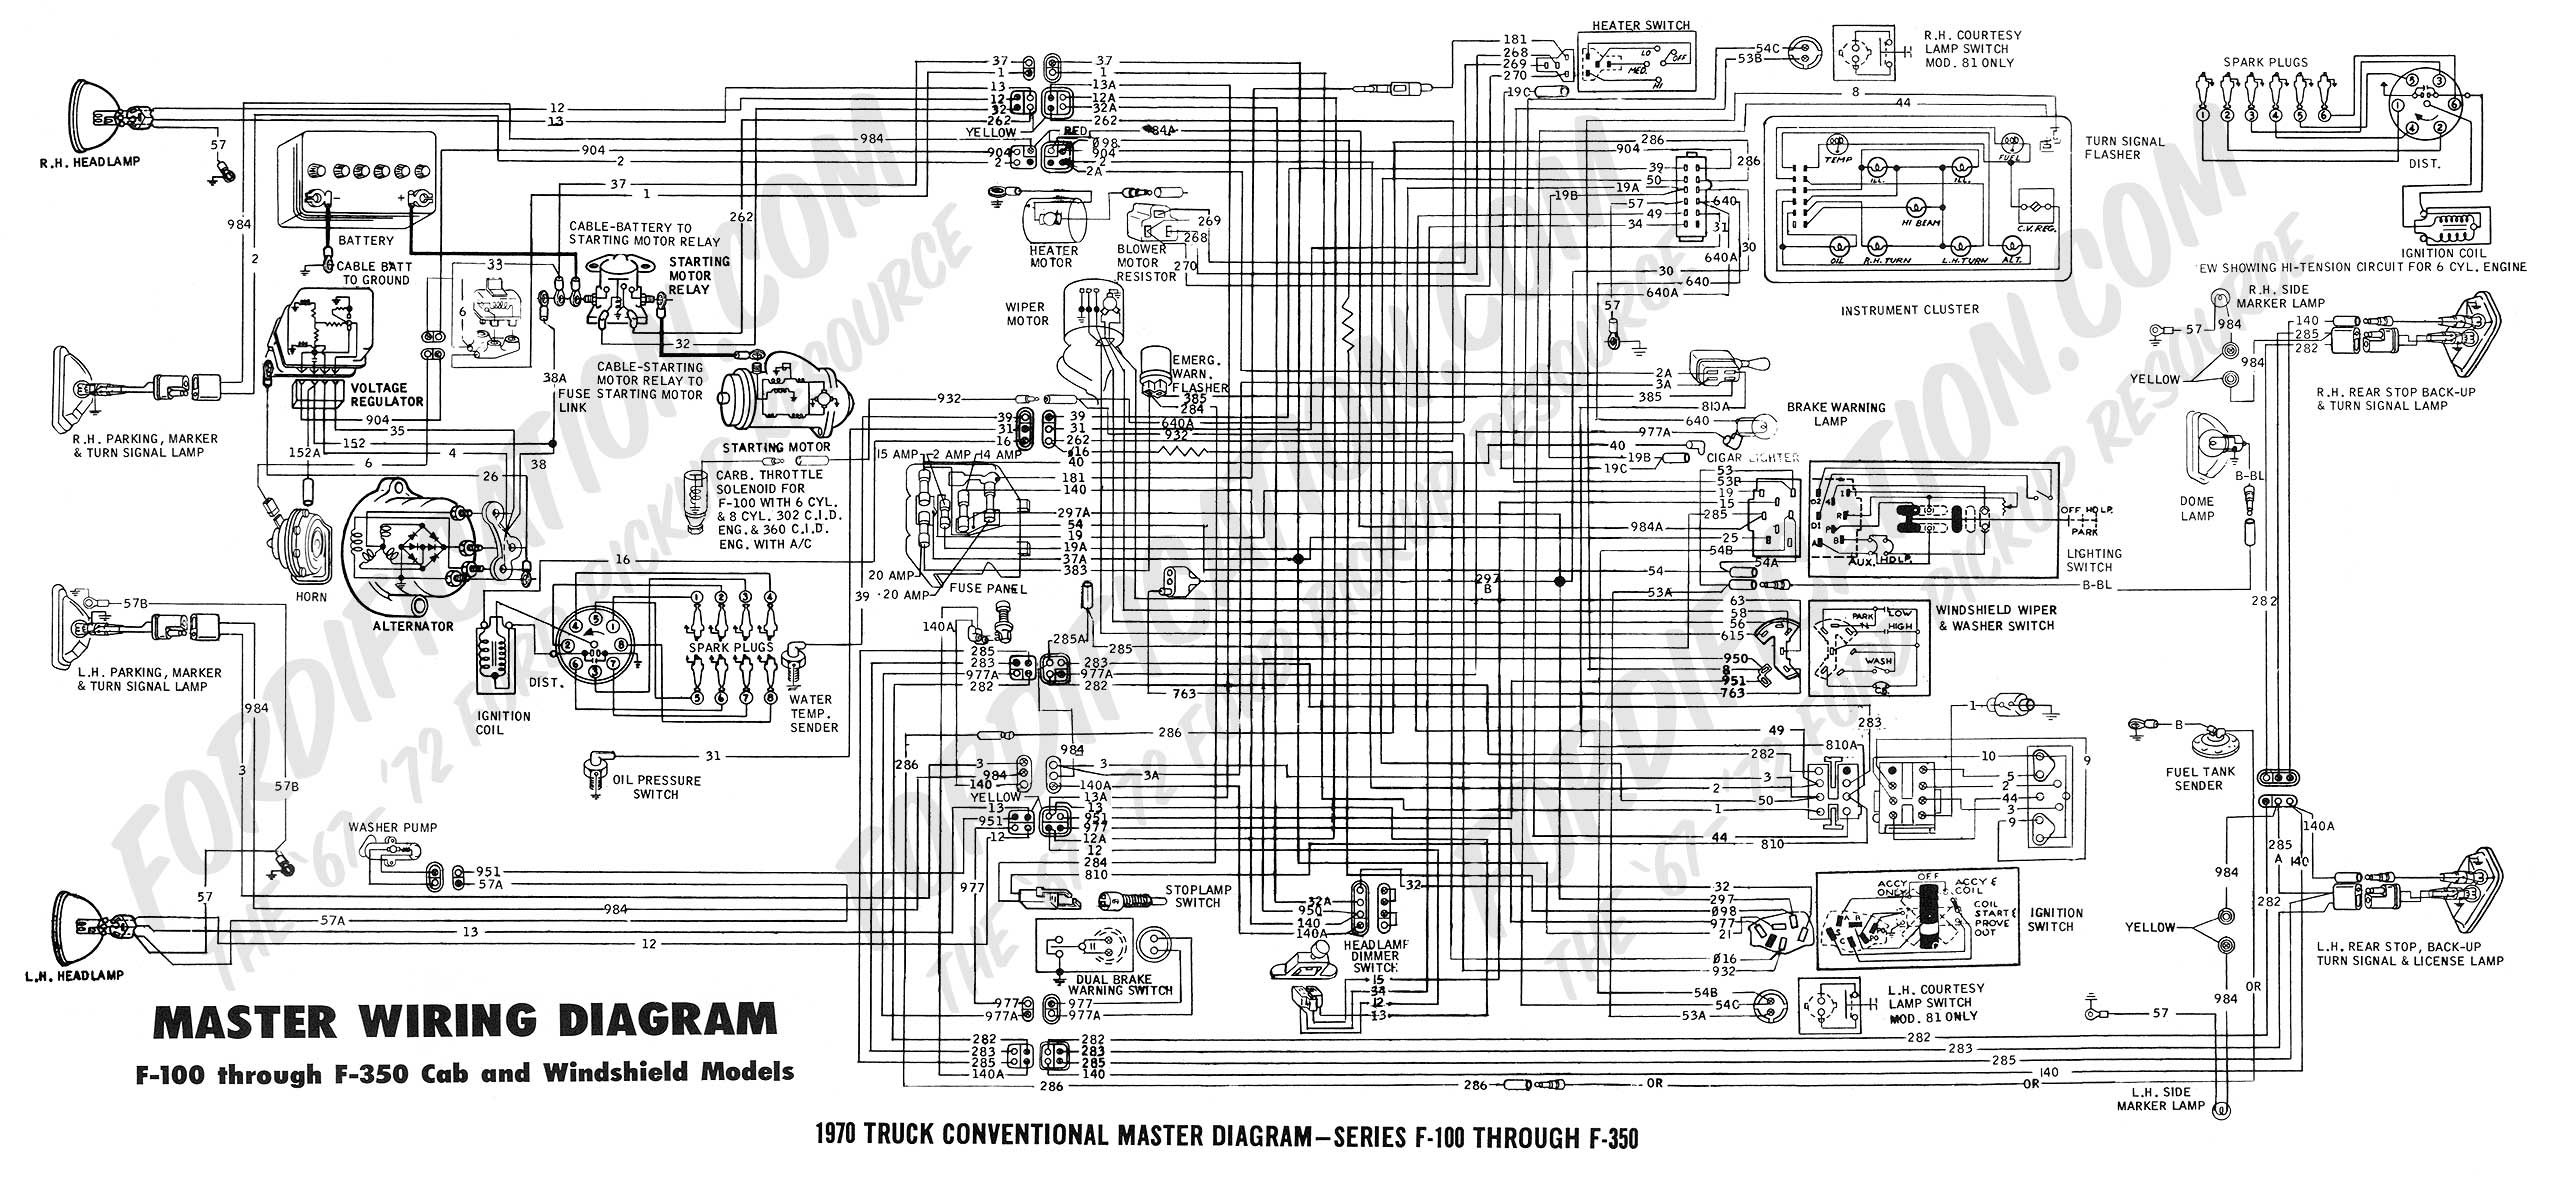 1979 ford wiring harness wiring diagram schemes trailer wiring harness  diagram 1967 ford truck steering column